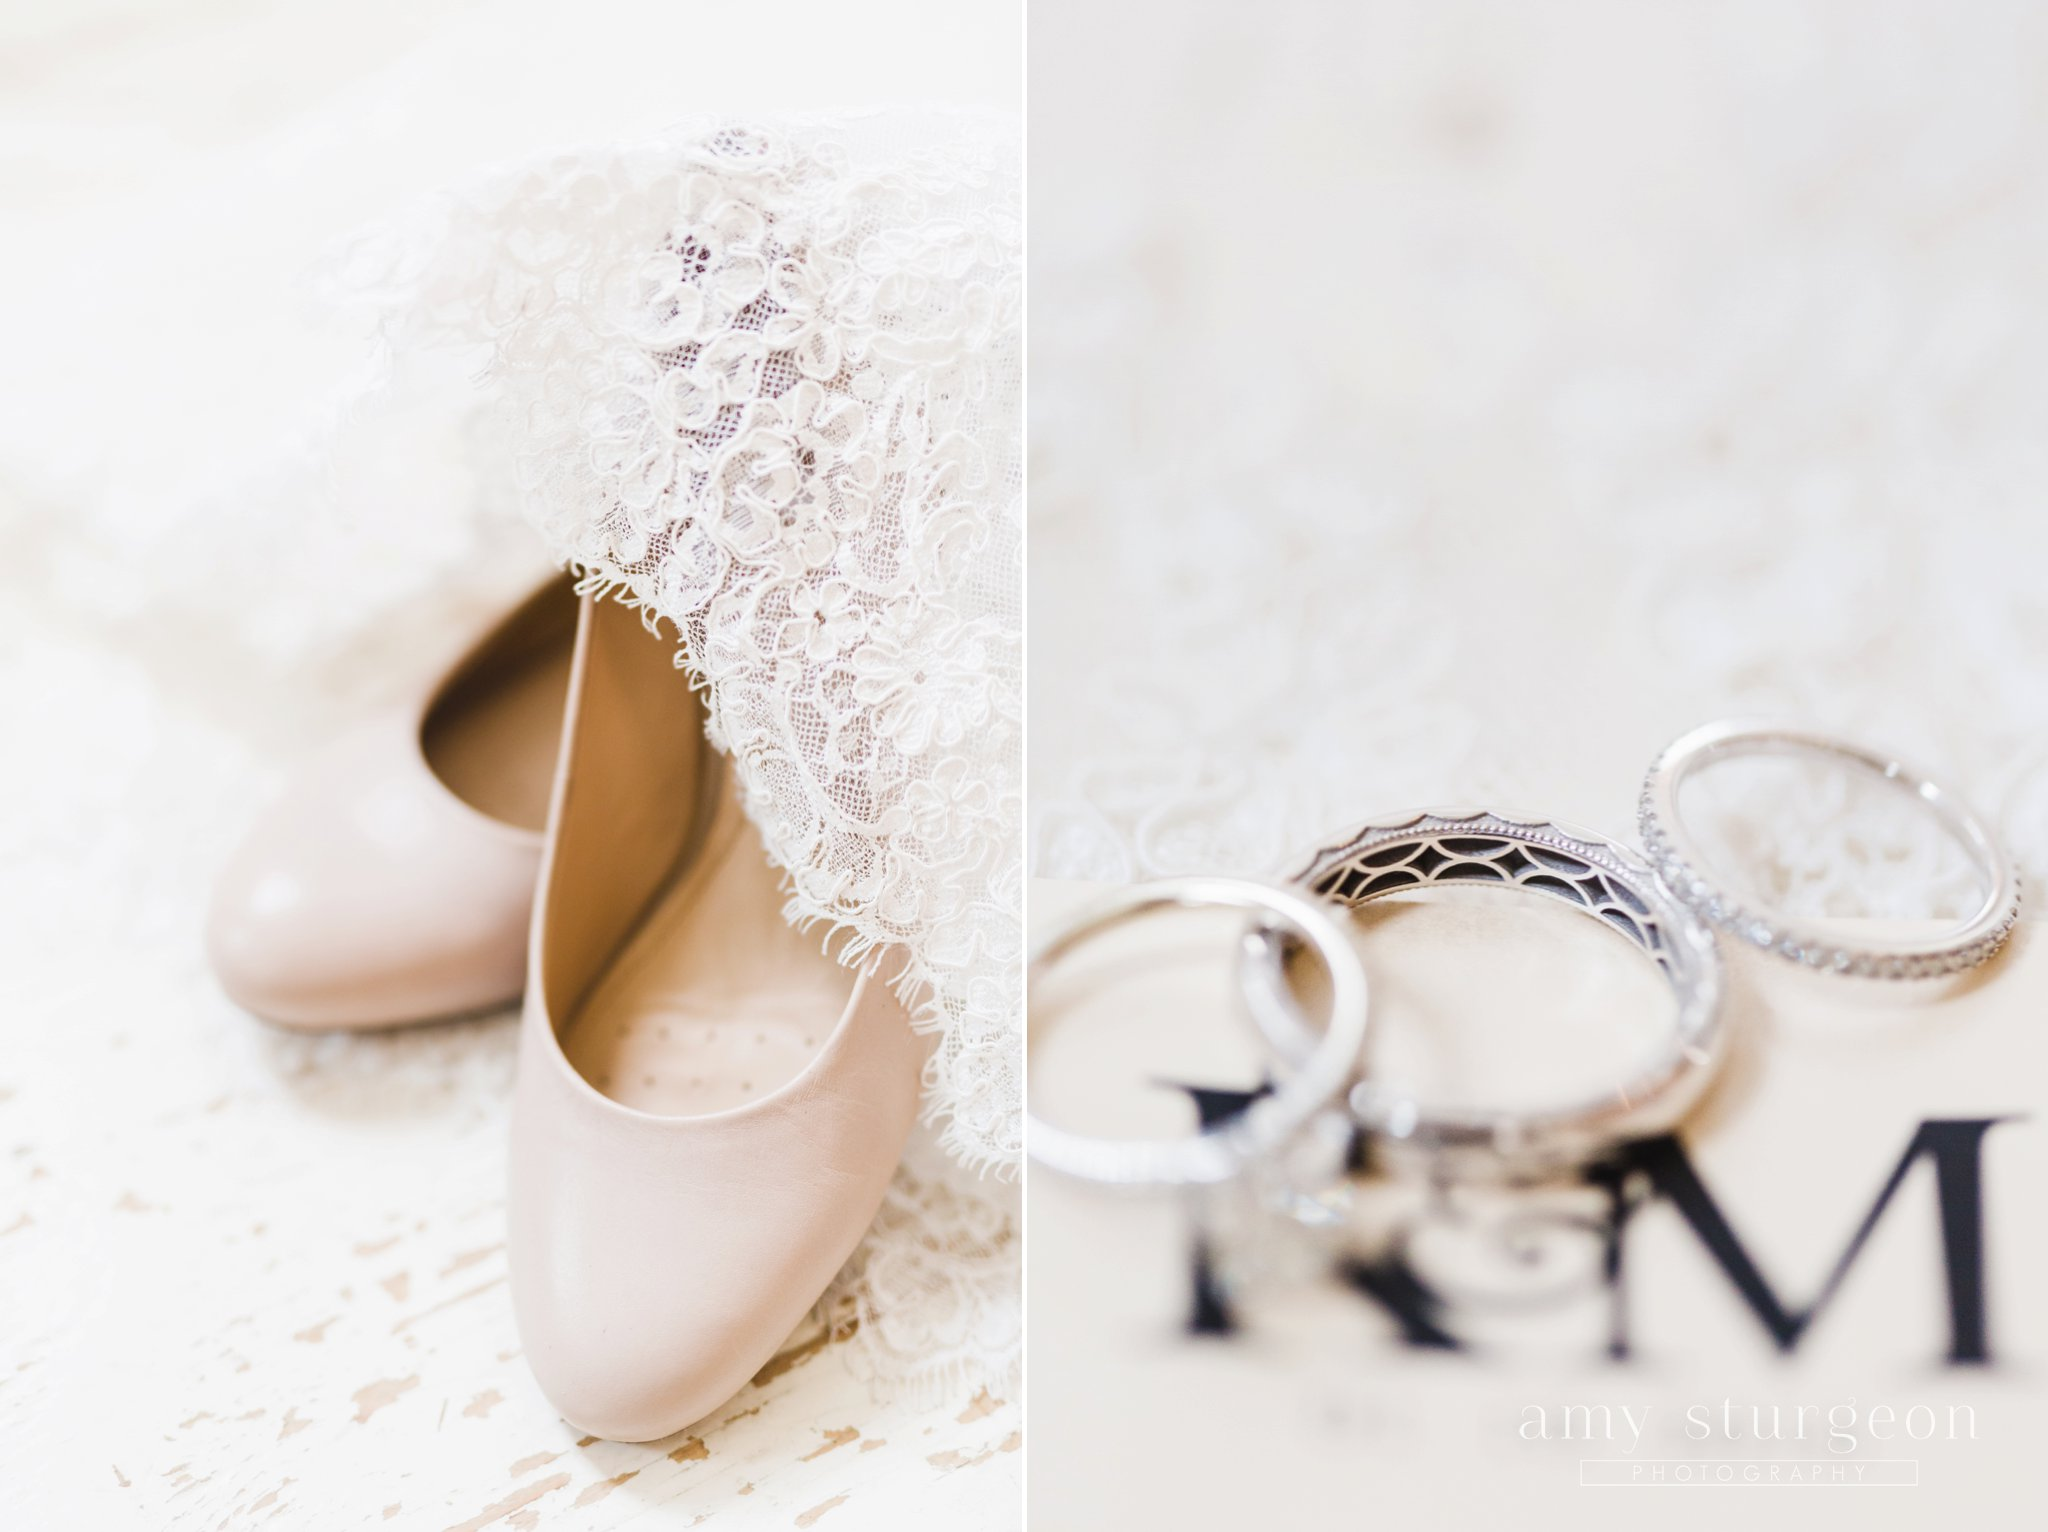 The tacori wedding bands had the most intricate detail inside the bands at the alpaca farm wedding in ottawa